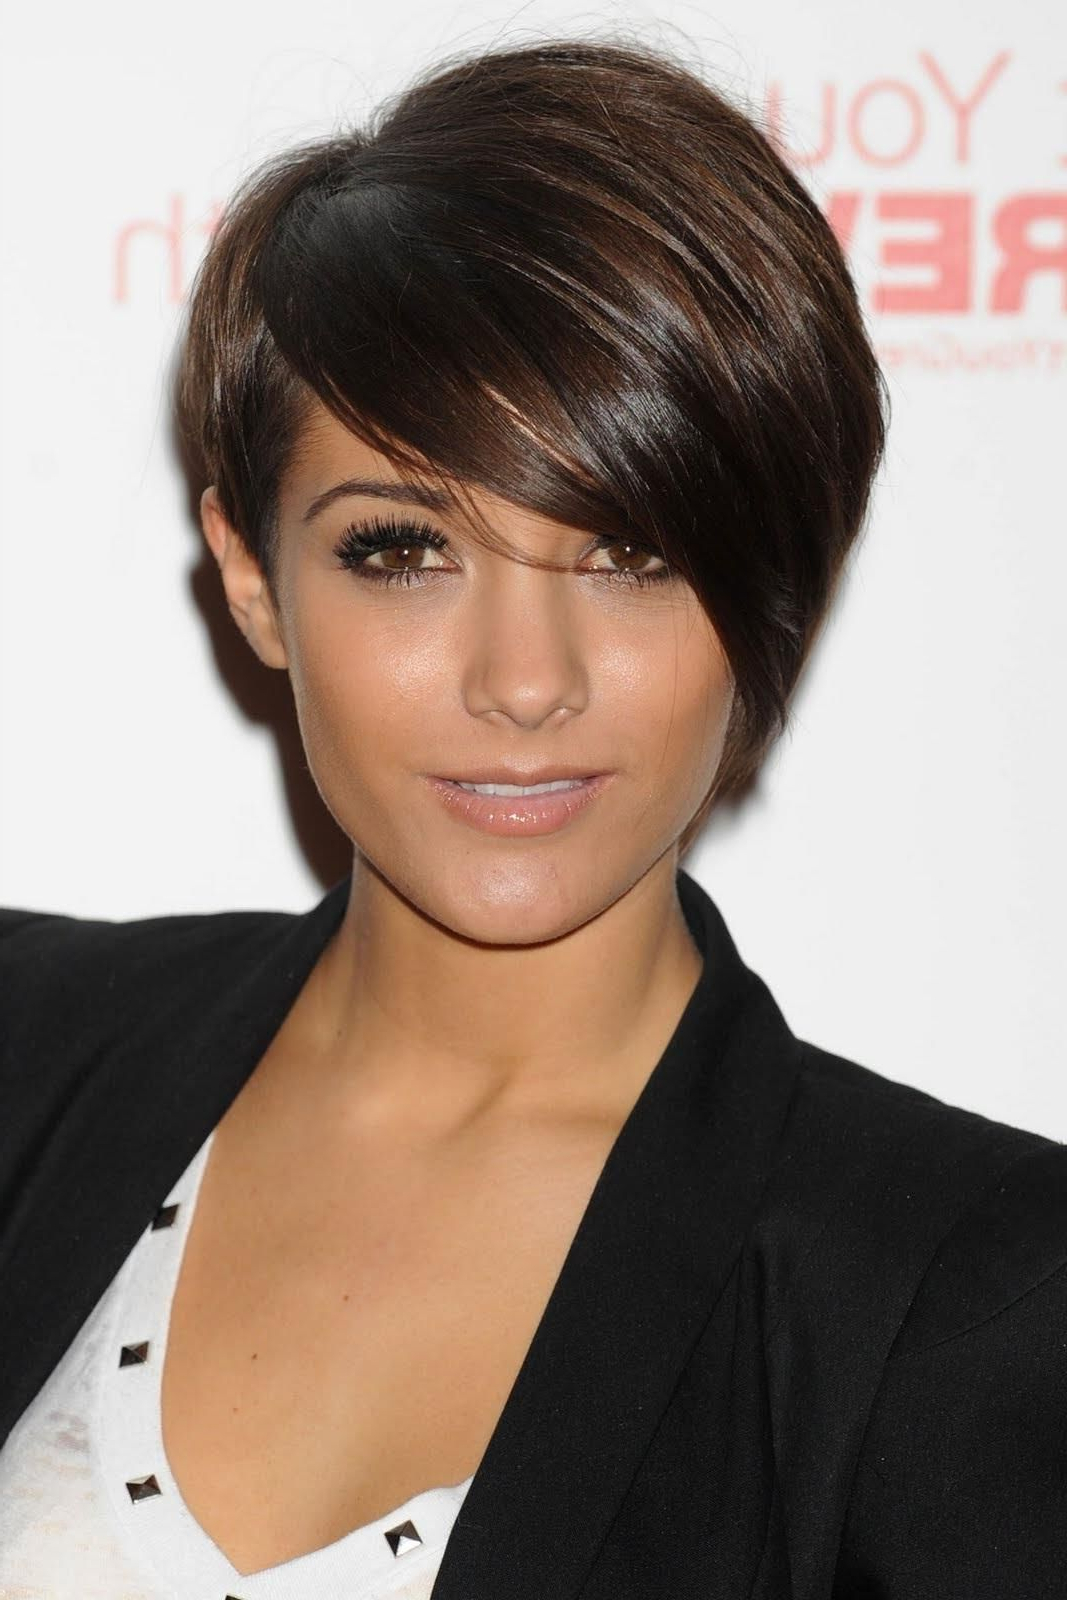 Frankie Sandford's Asymmetric Pixie Is Edgy & Fabulous | Ladies I Regarding Edgy Asymmetrical Short Haircuts (View 18 of 25)